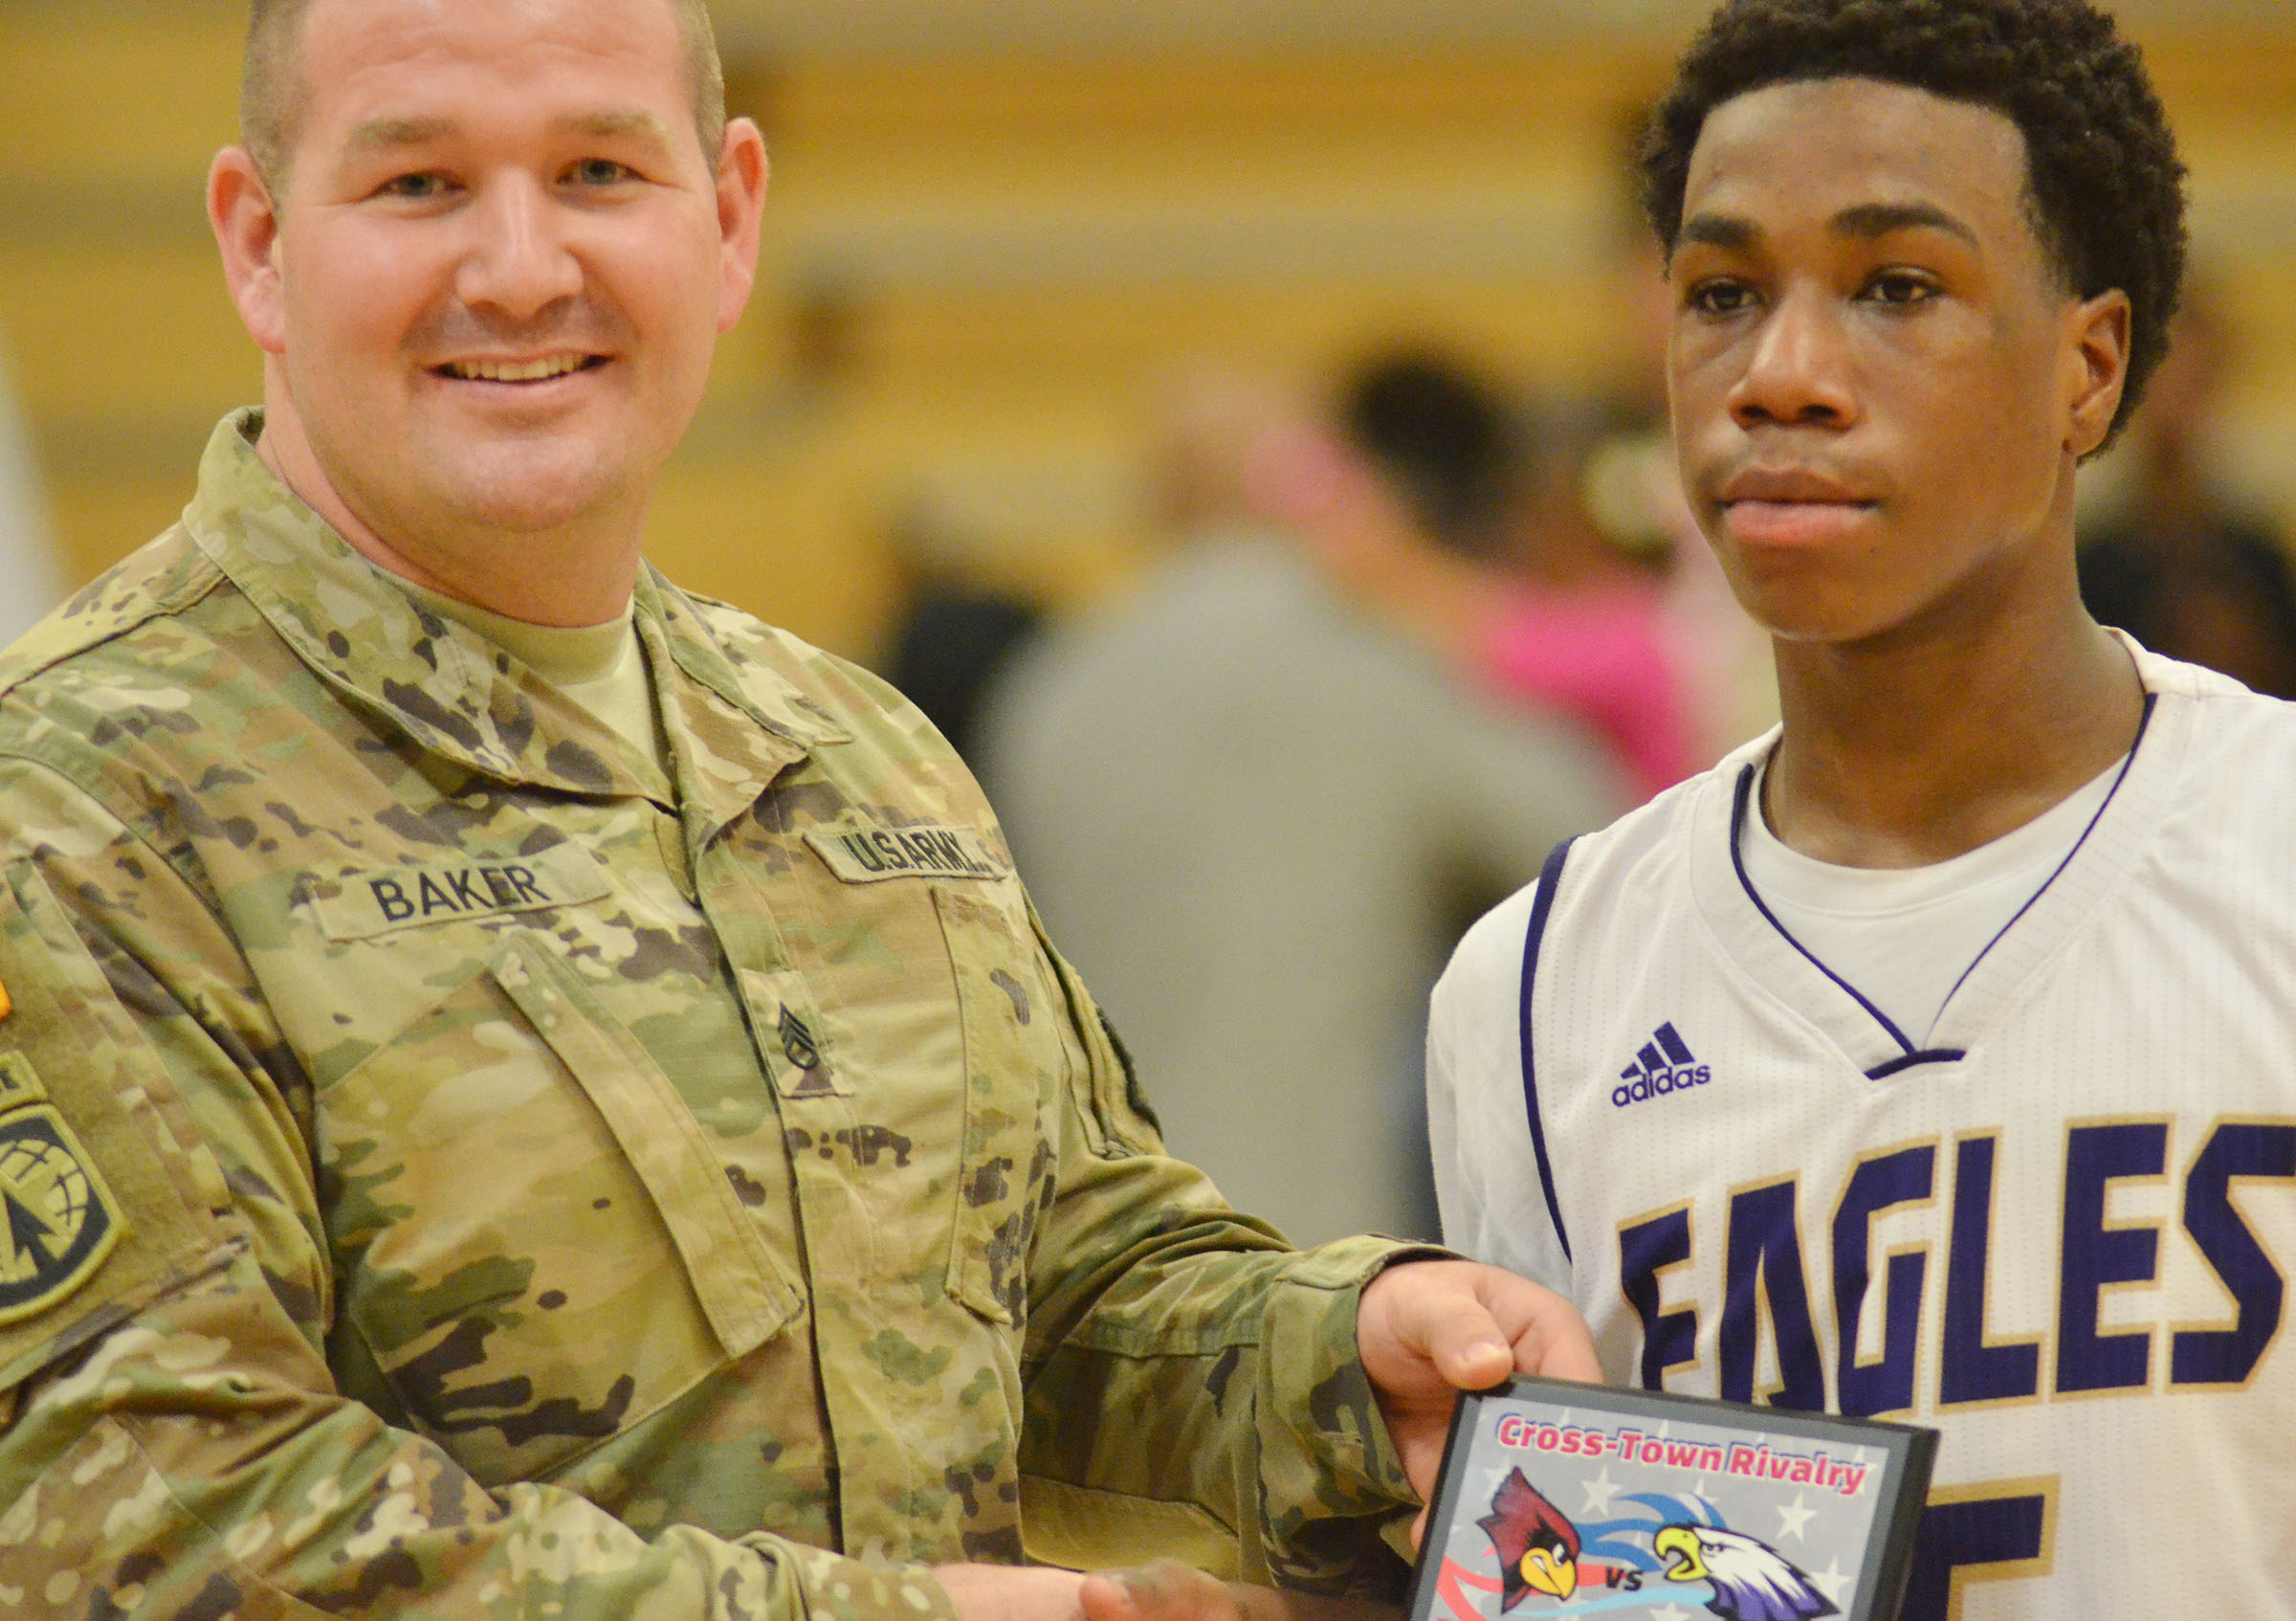 CHS freshman Malachi Corley receives the Player of the Game award from Army National Guard Sgt. Phillip Baker.